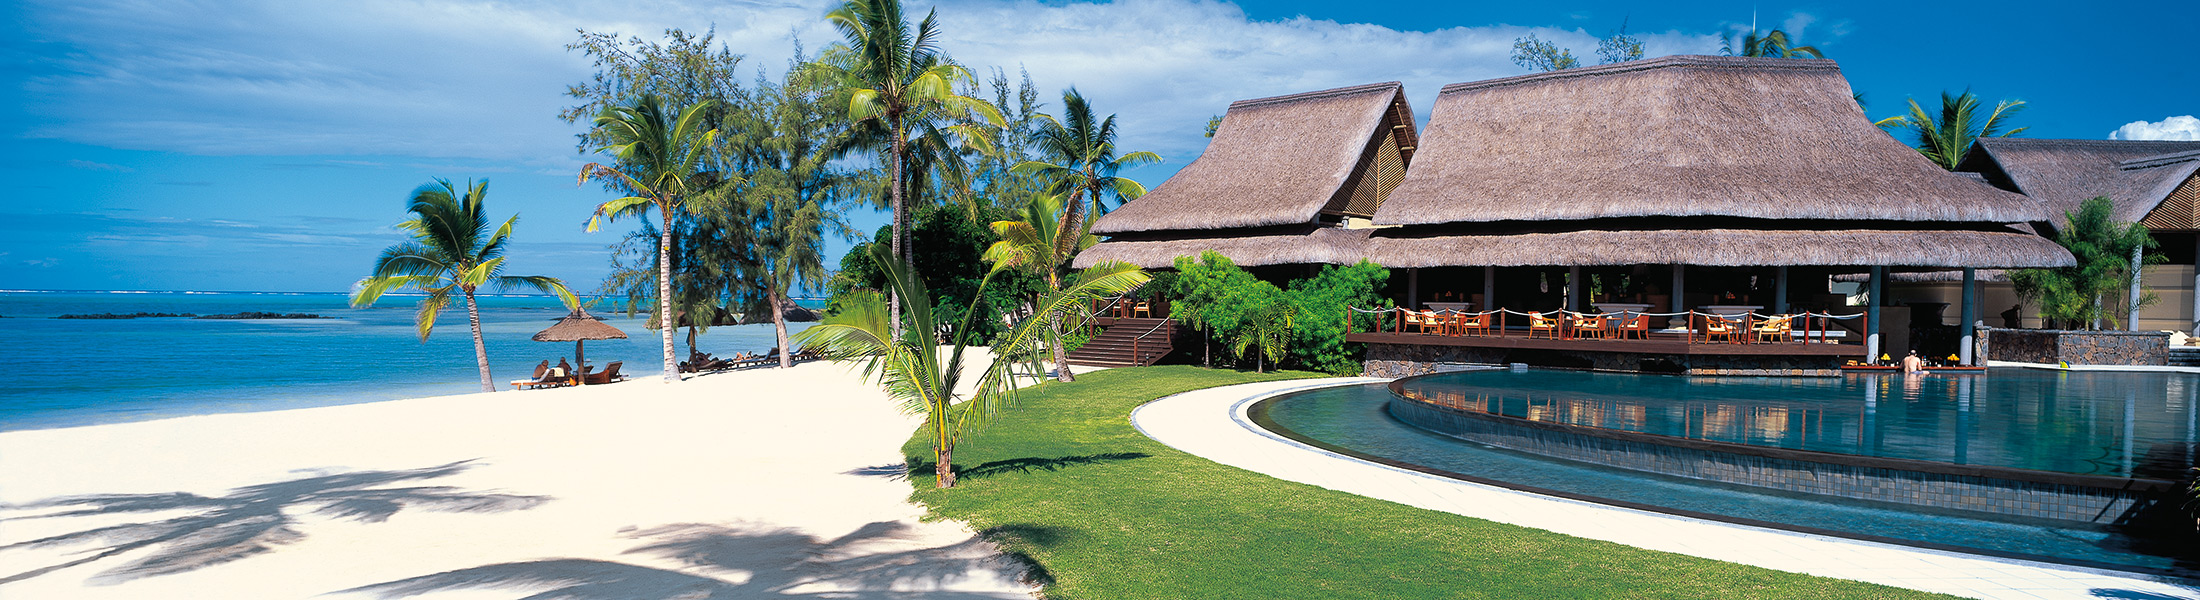 Infinity pool and beach at Constance Prince Maurice